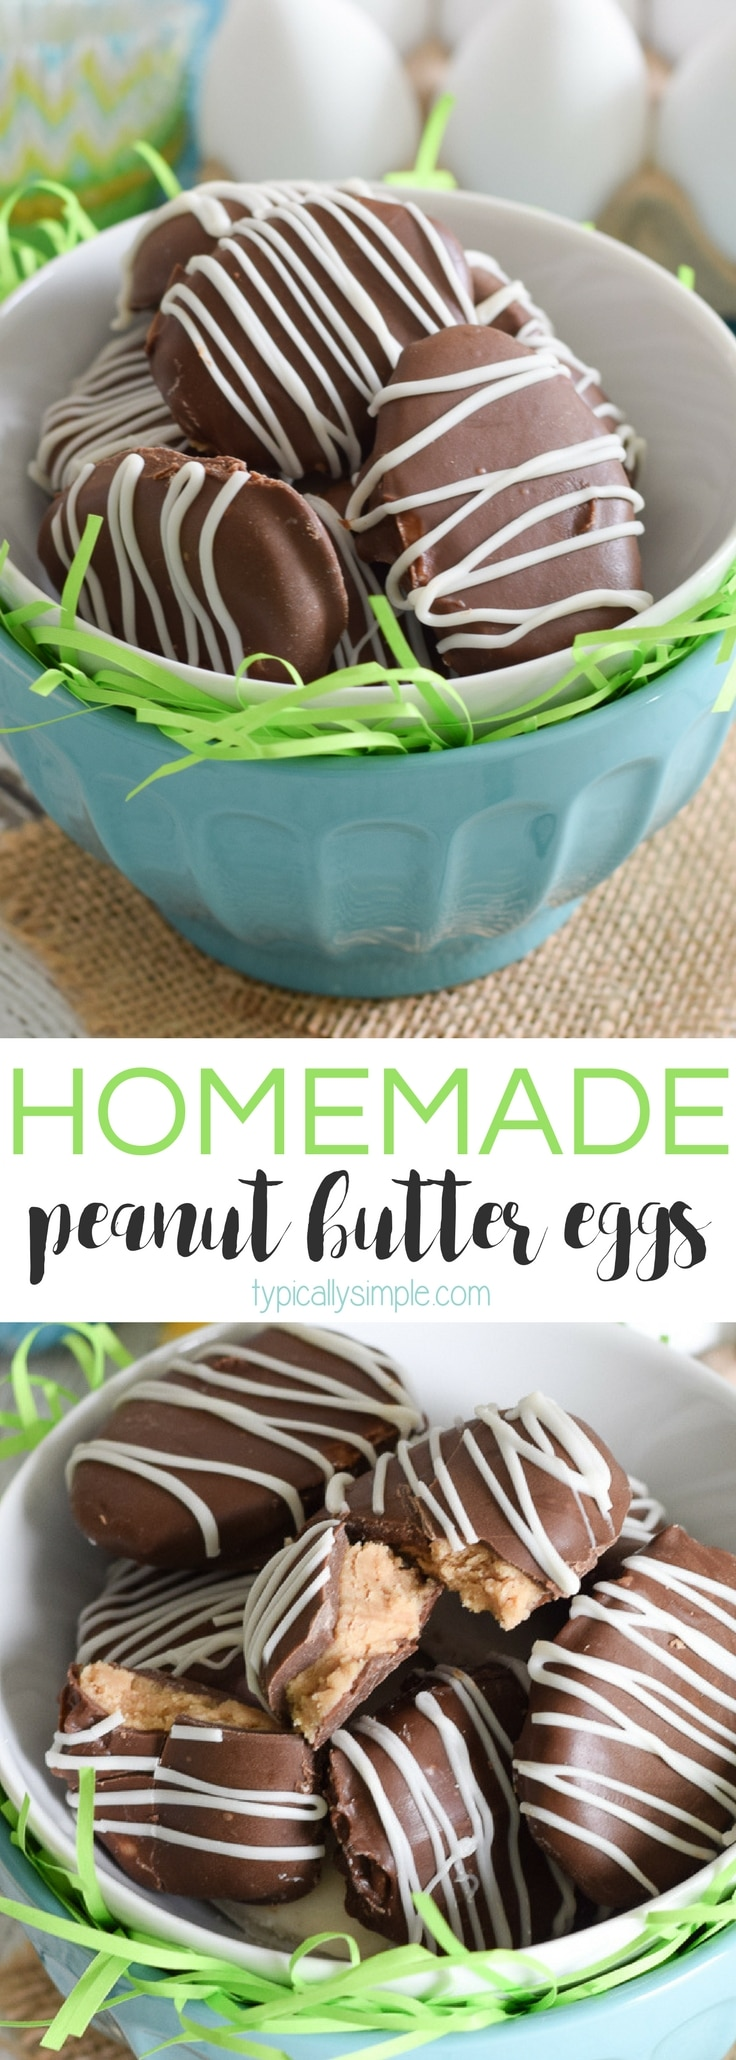 With just four basic ingredients, these homemade peanut butter eggs are super easy to whip up for Easter!